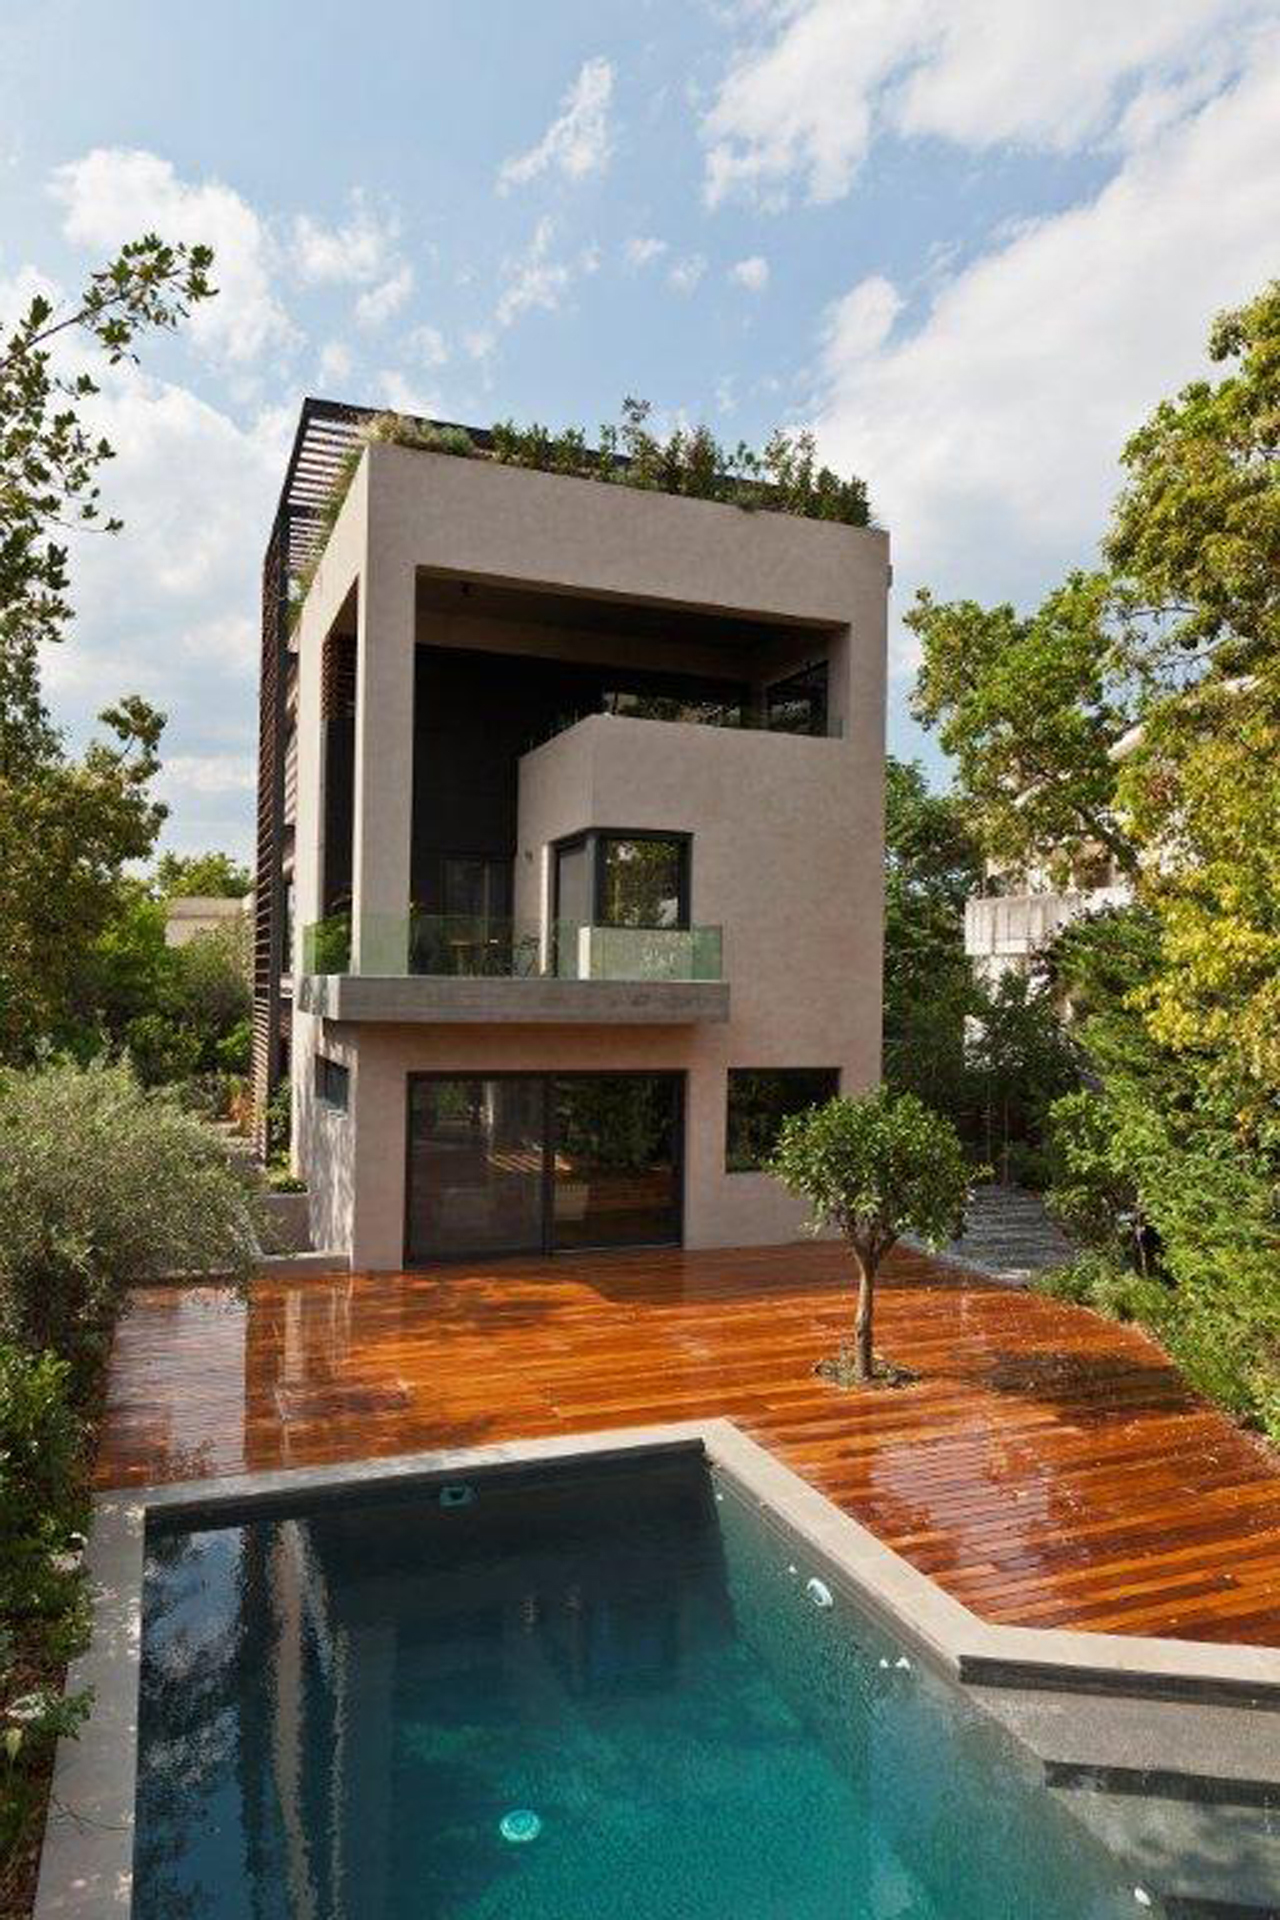 Gallery of residence in filothei gem architects 13 for Small house photos gallery